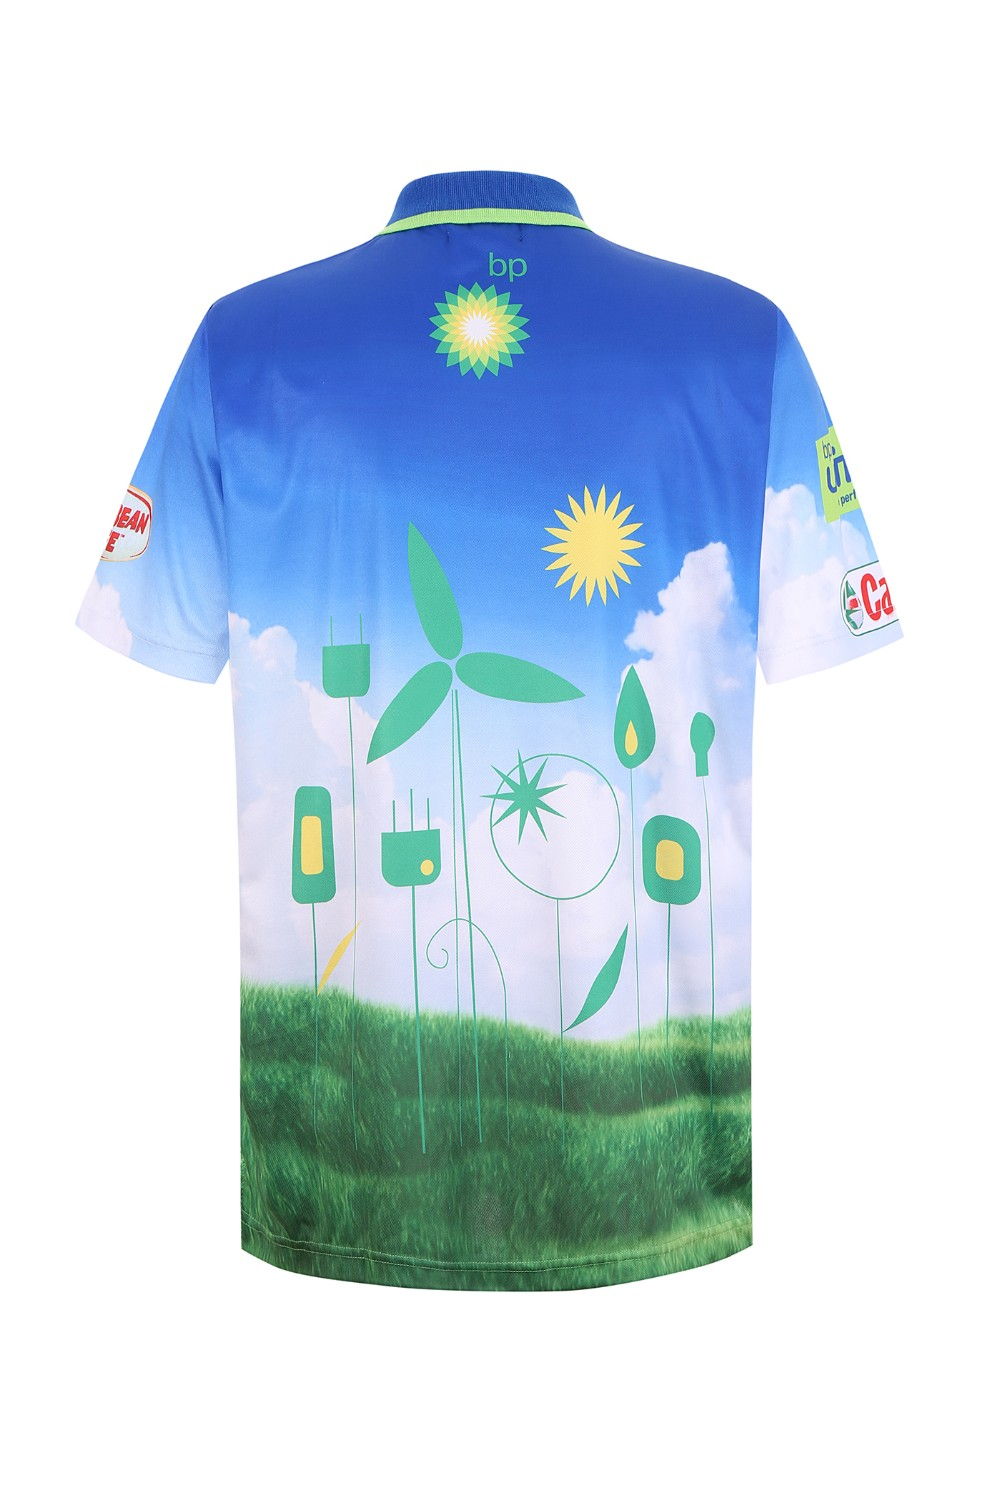 custom sublimation sport blank t shirt